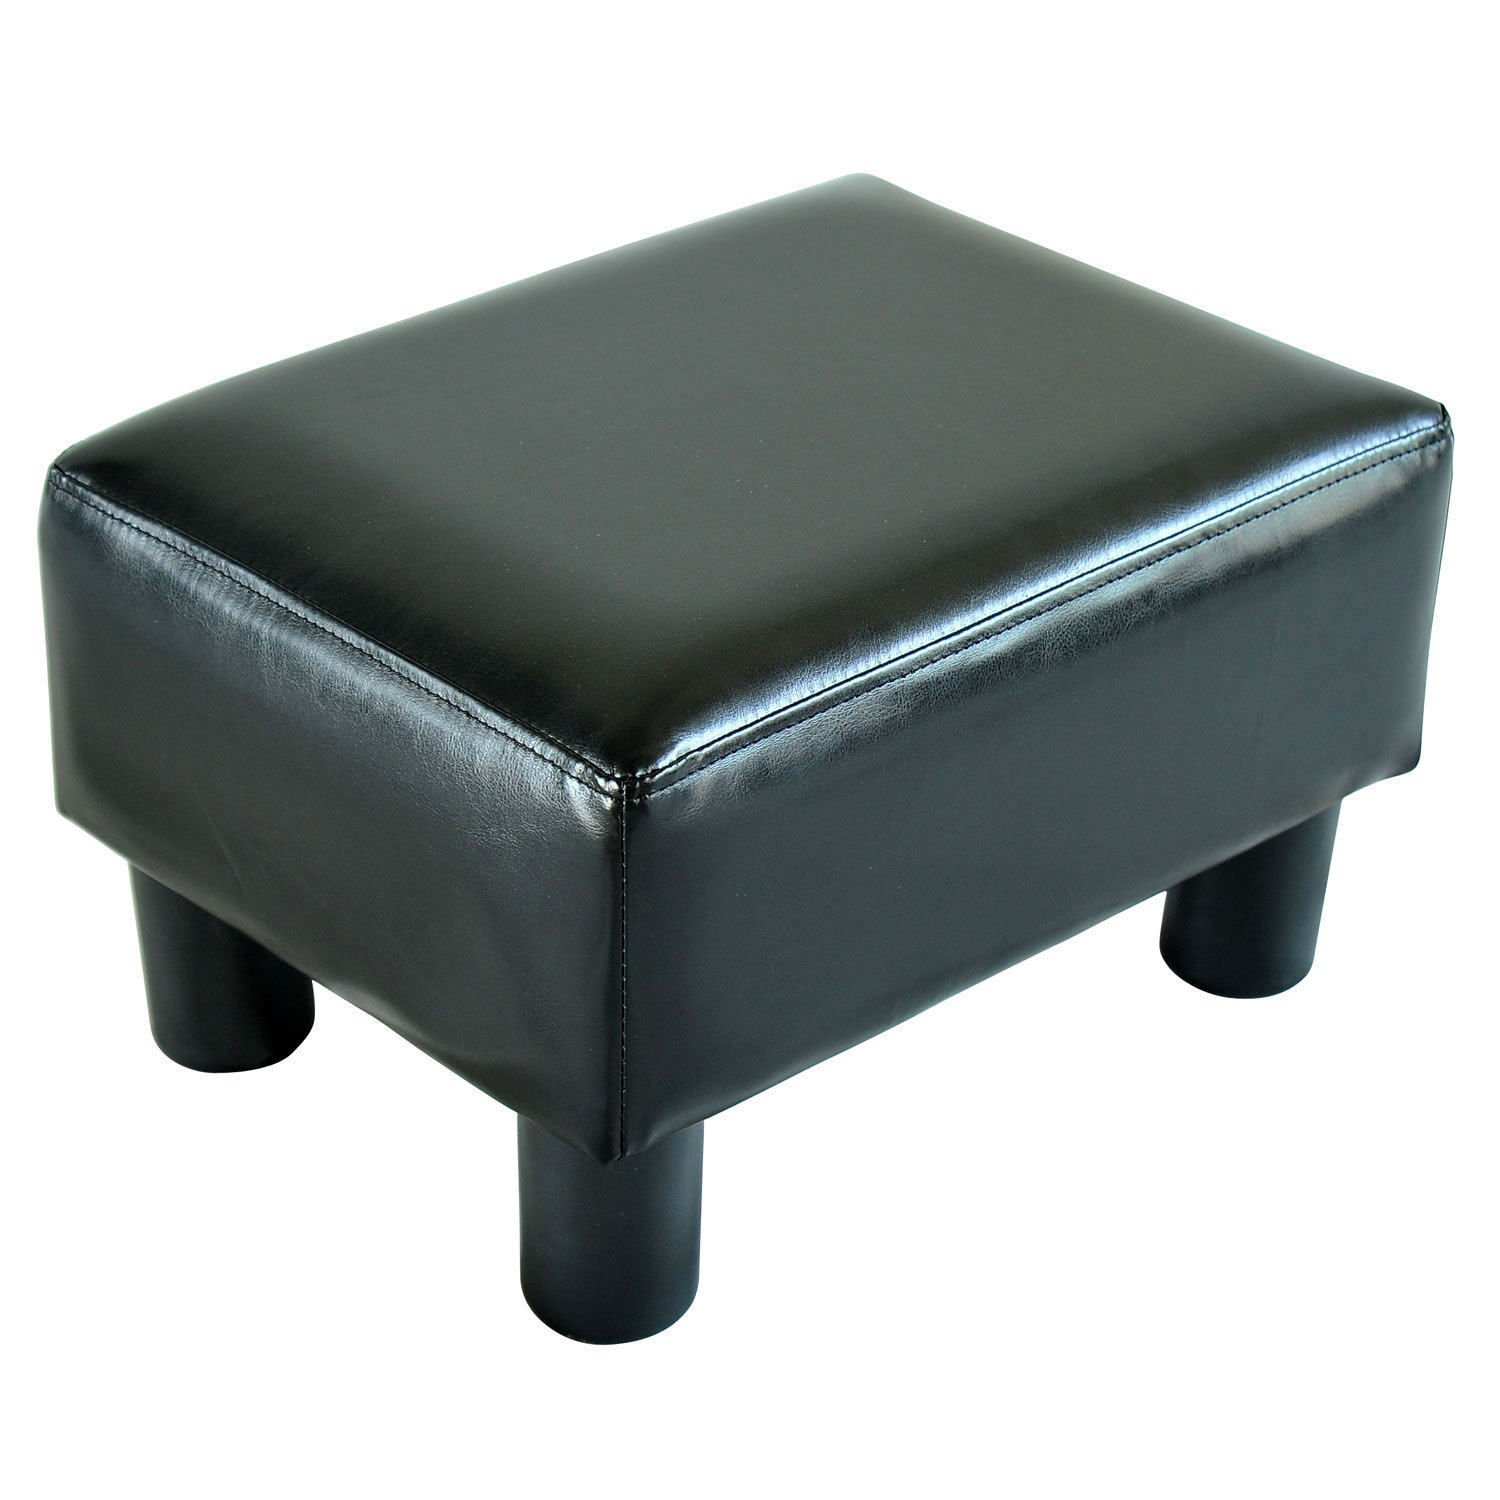 Black Small Ottoman Footrest PU Leather Footstool Rectangular Seat stool Easy to move